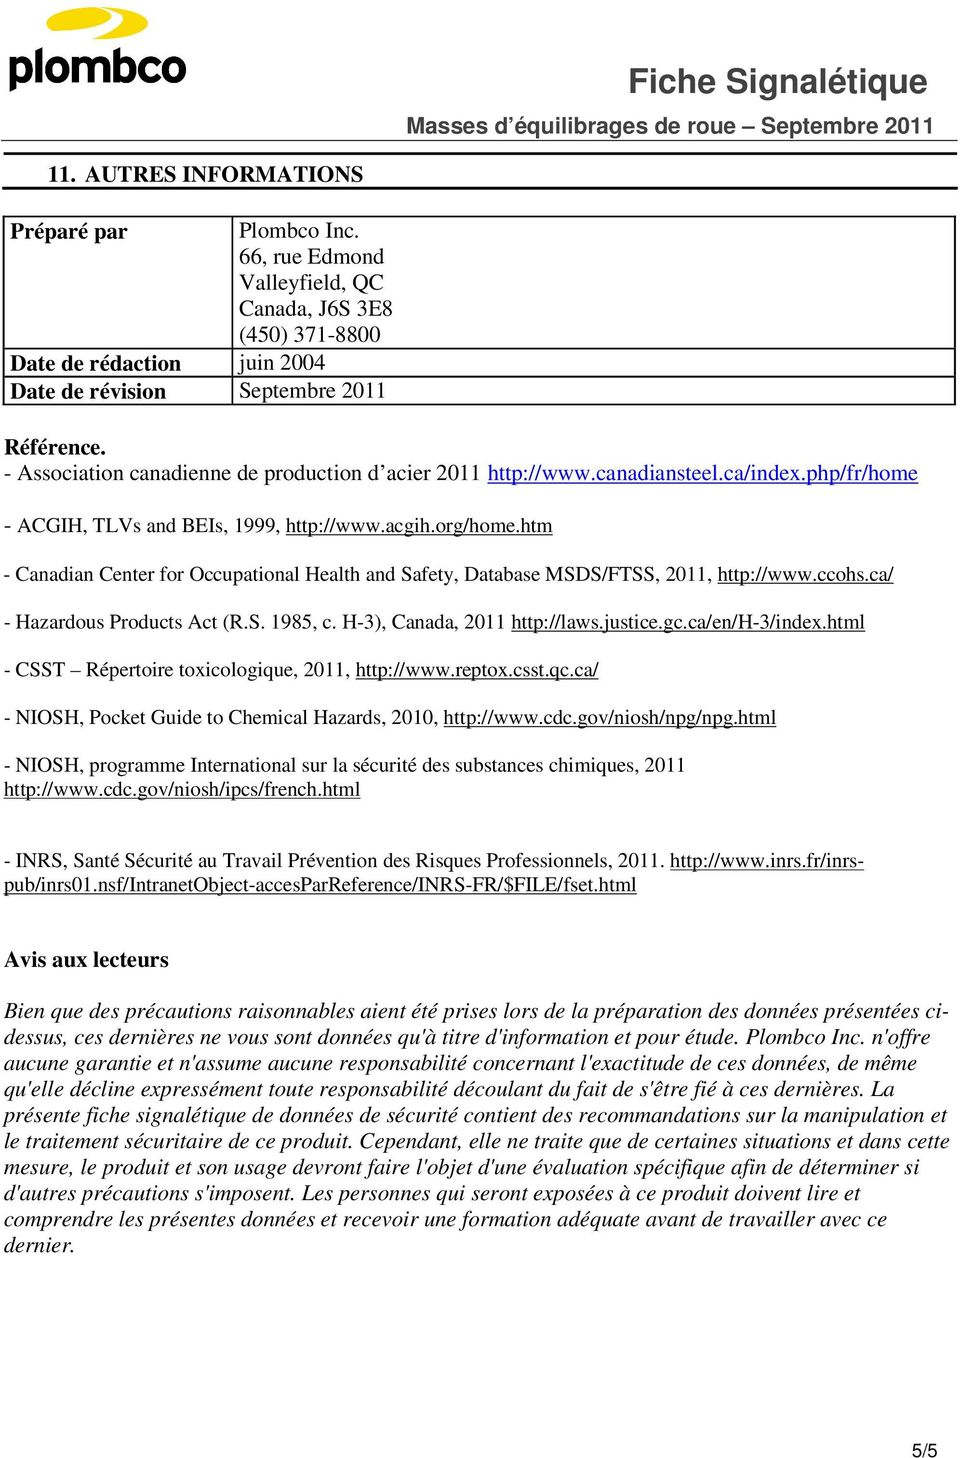 htm - Canadian Center for Occupational Health and Safety, Database MSDS/FTSS, 2011, http://www.ccohs.ca/ - Hazardous Products Act (R.S. 1985, c. H-3), Canada, 2011 http://laws.justice.gc.